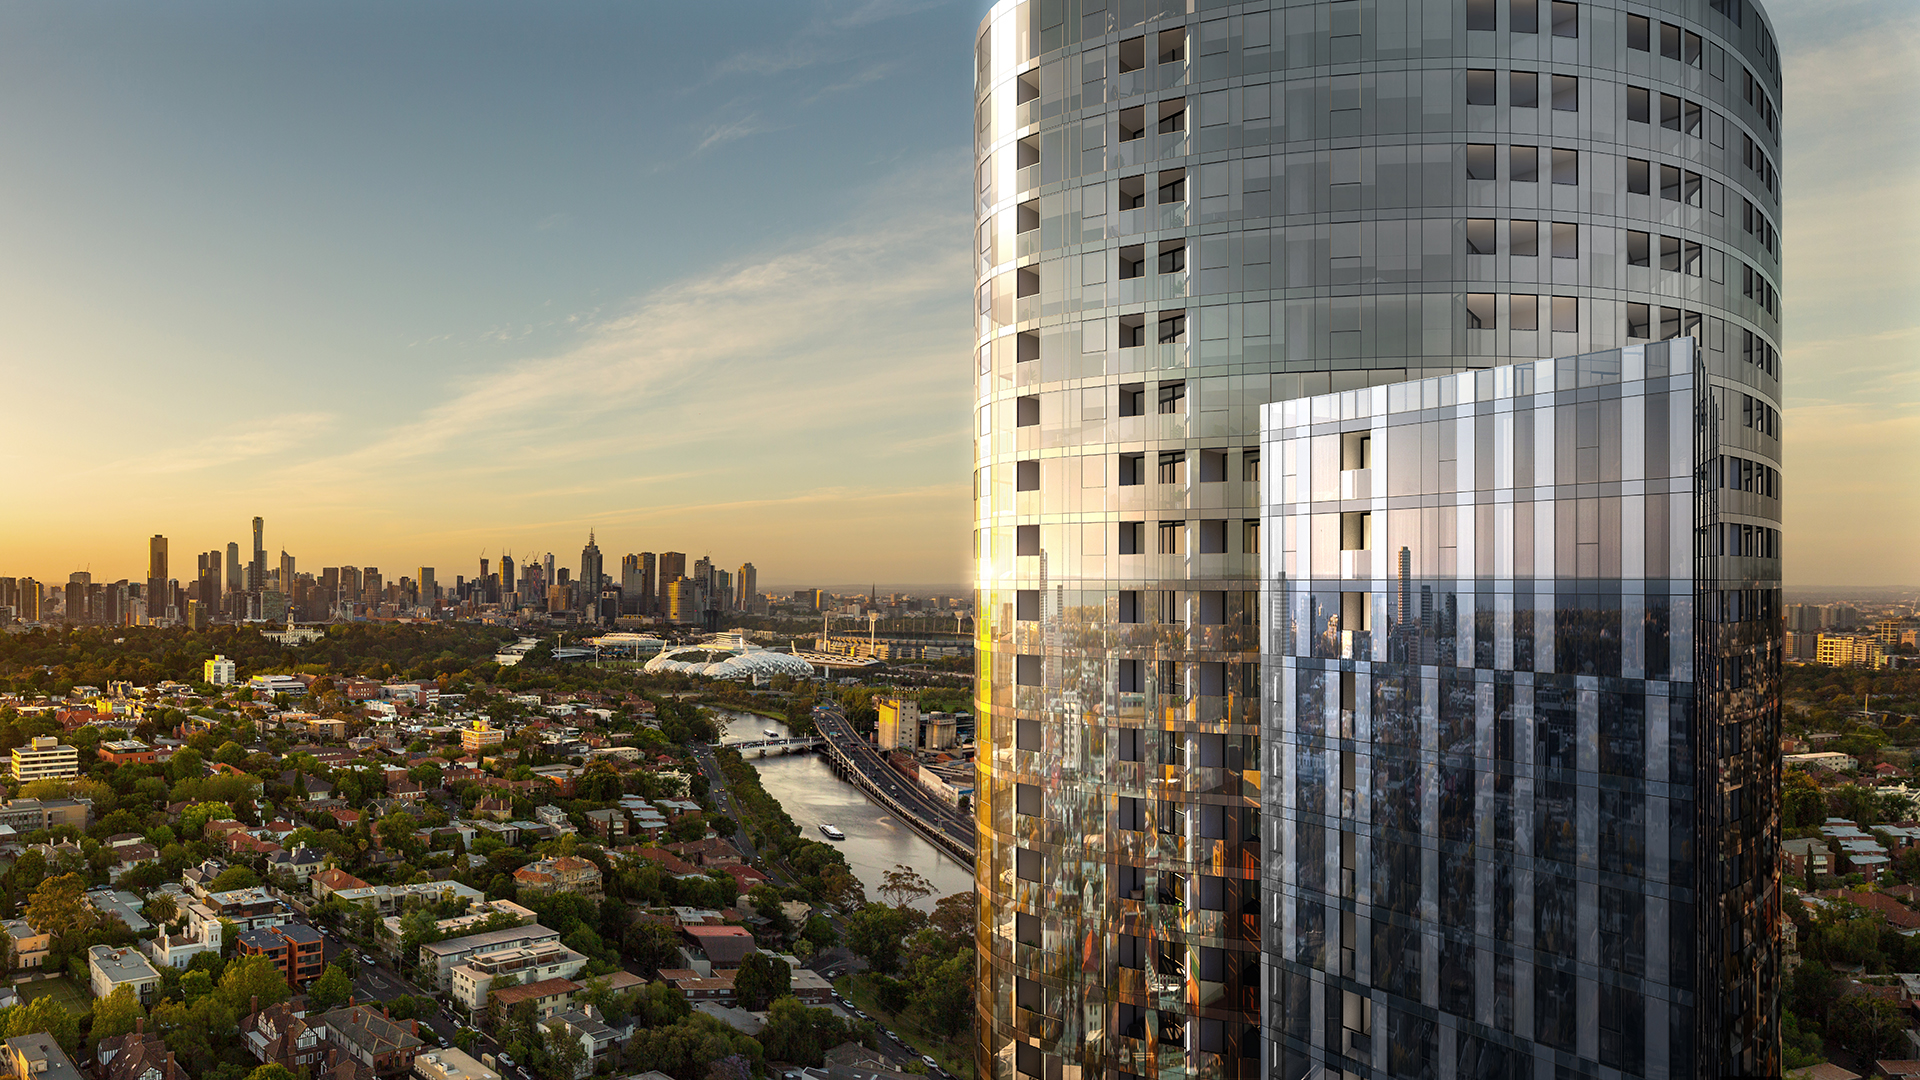 21 08 16 22 claremont street south yarra vic 3141 off the plan